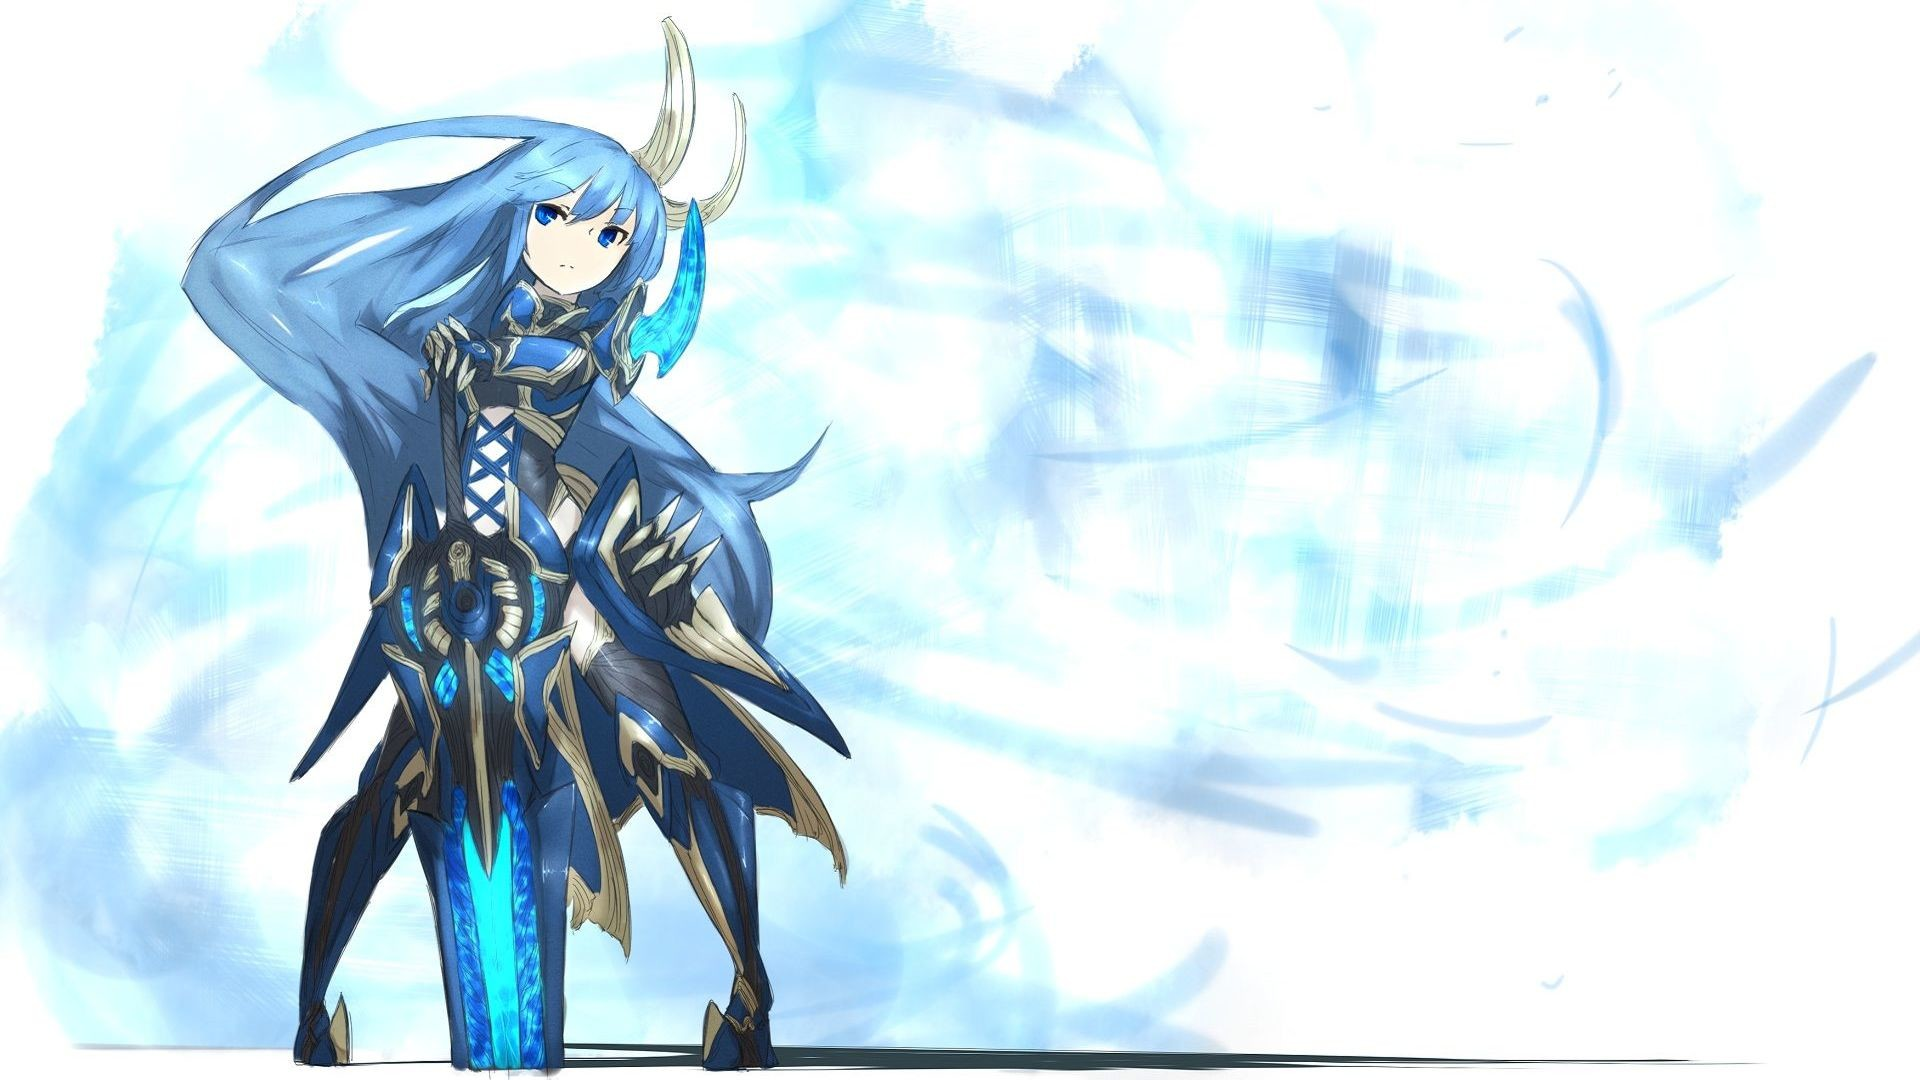 1920x1080 Blue girl with a sword HD Wallpaper  Blue ...